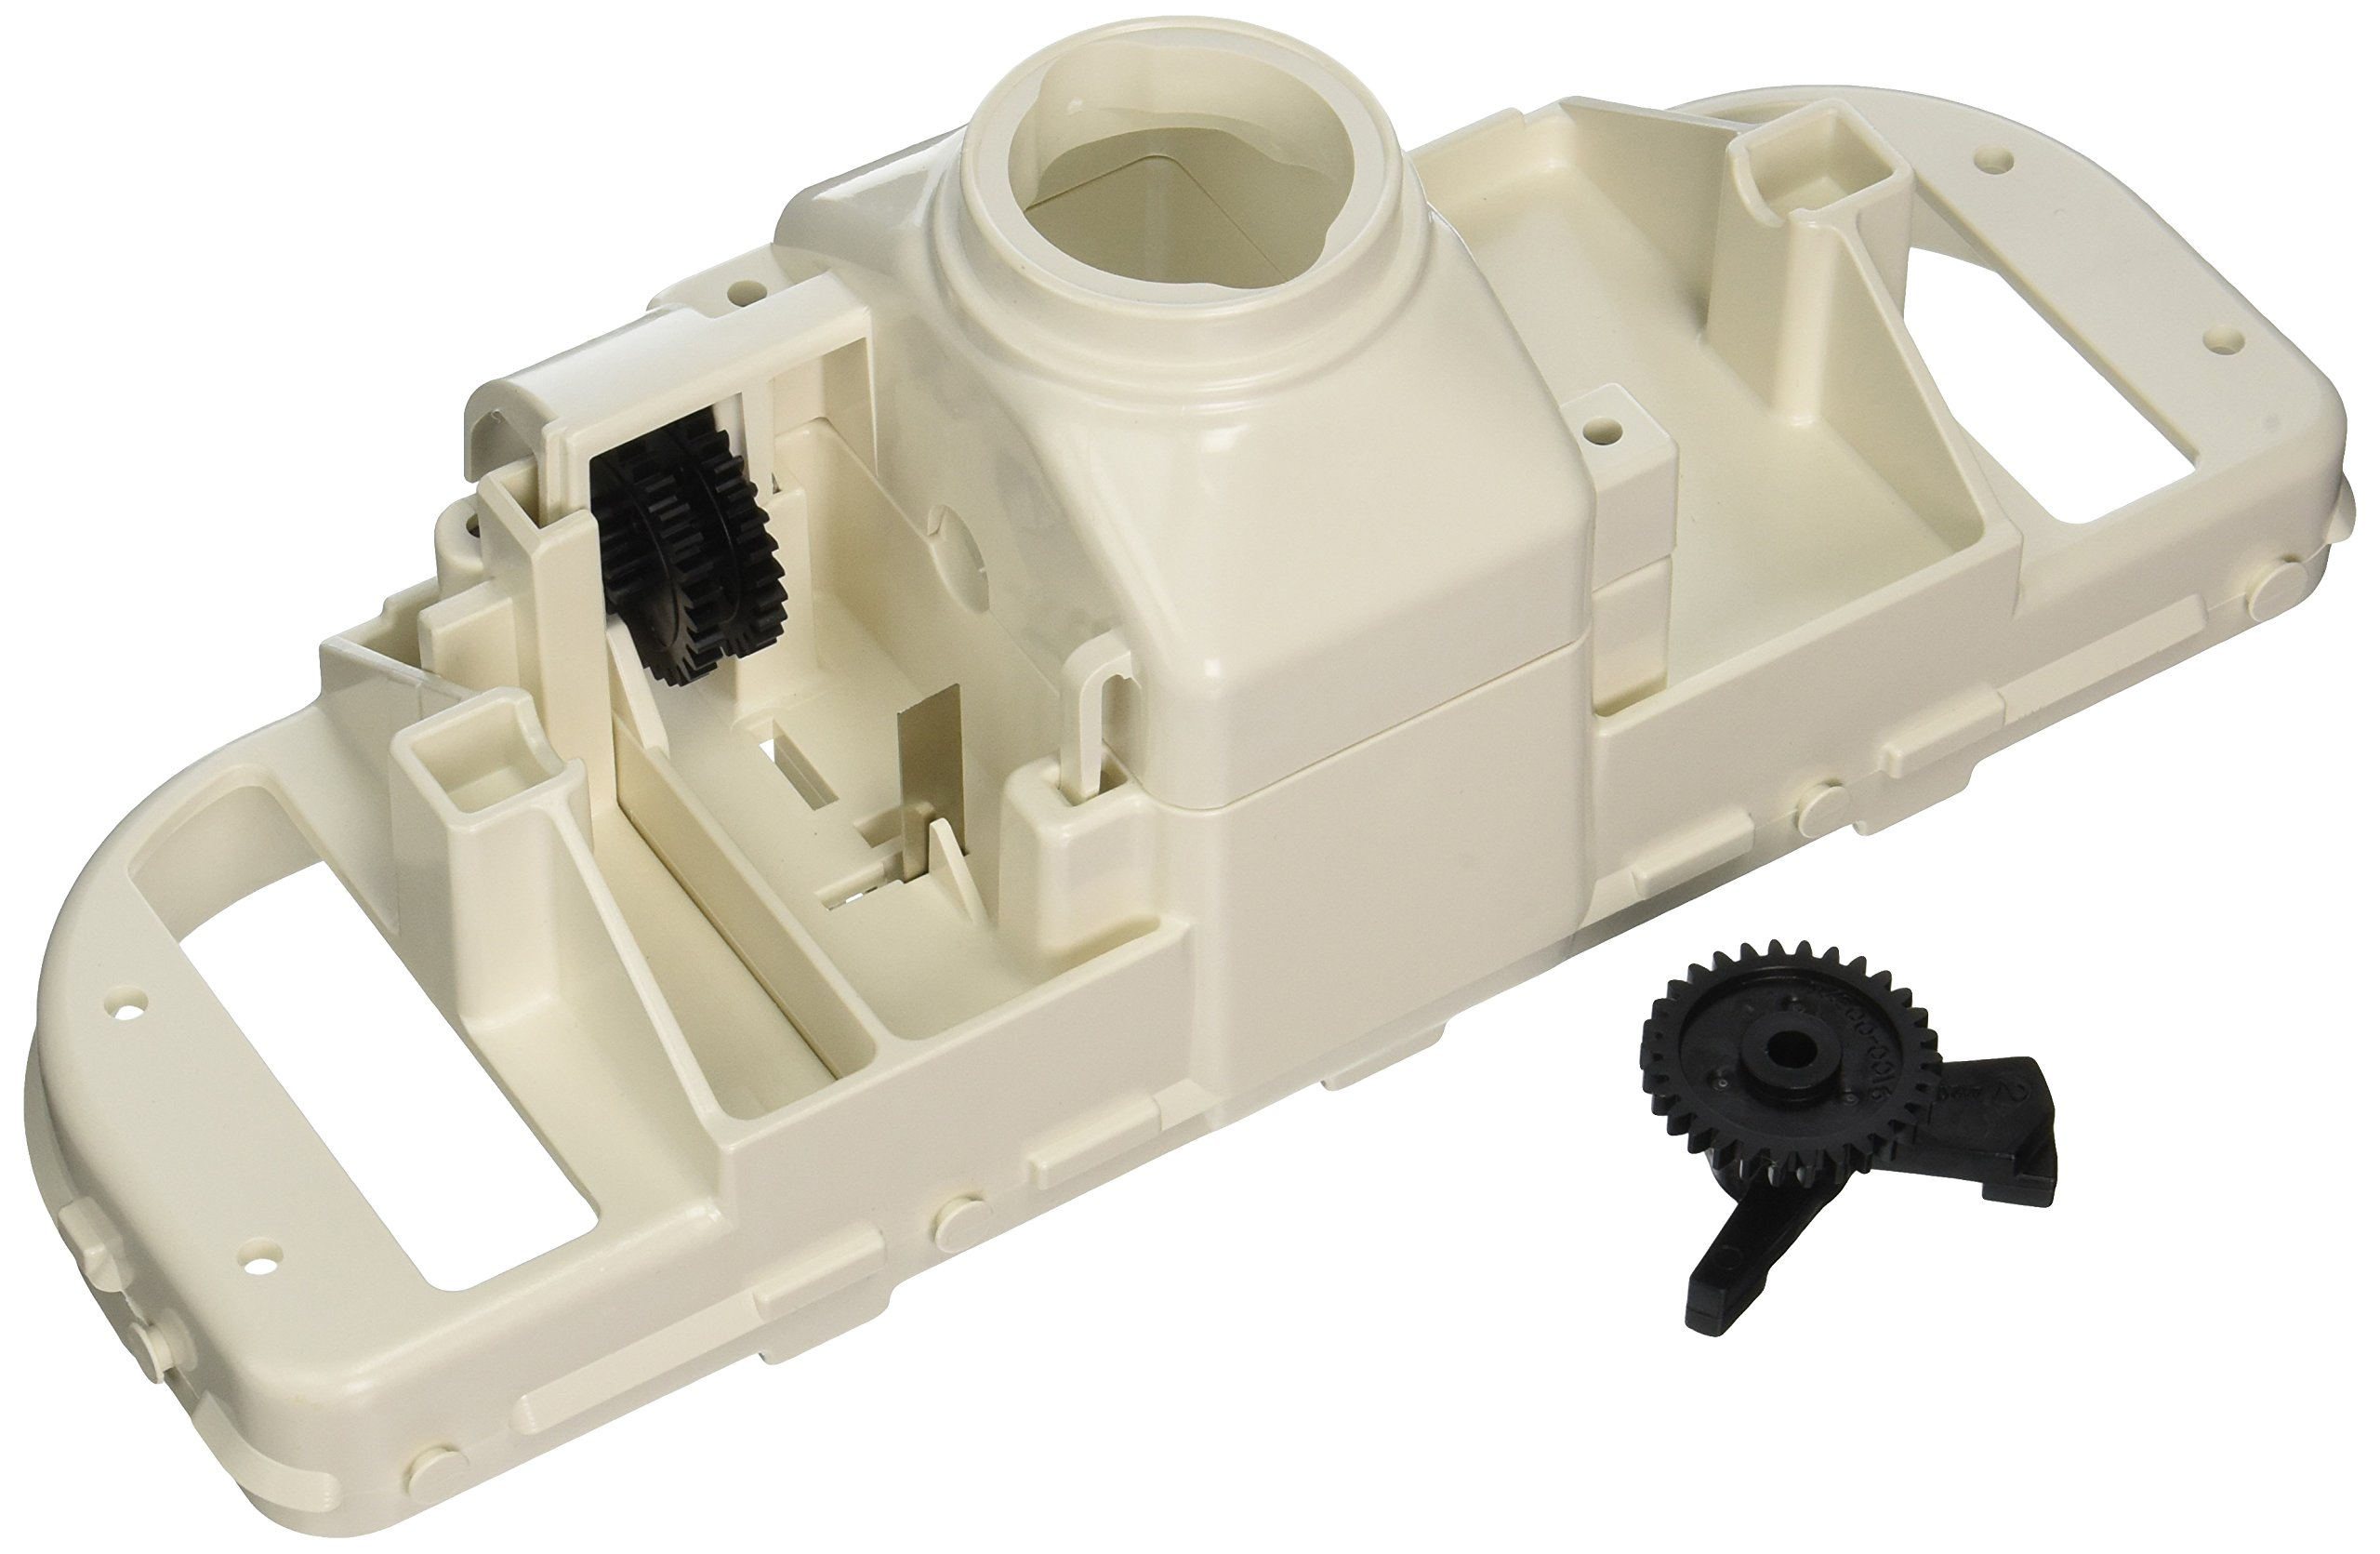 Pentair GW9535 Lower Body Replacement Kreepy Krauly Great White GW9500 Automatic Pool and Spa Cleaner